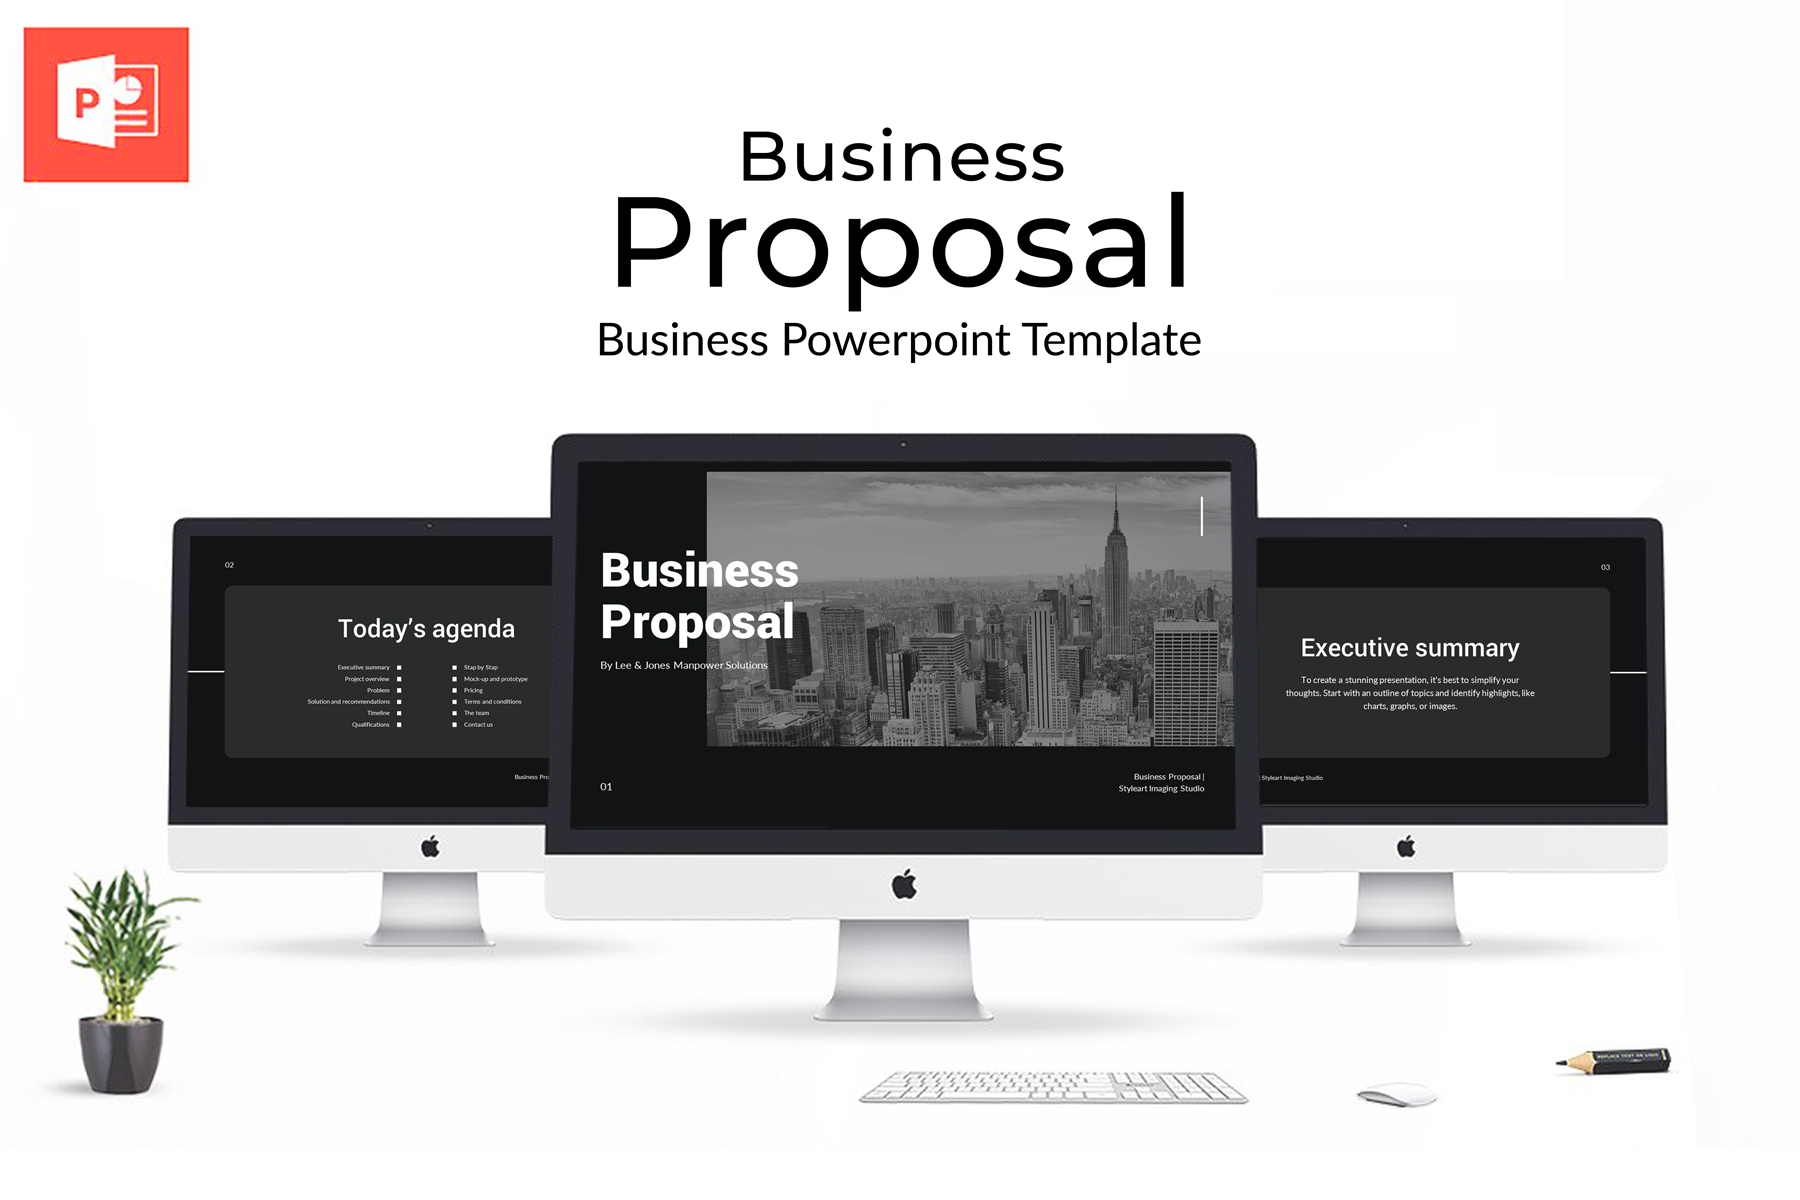 Business Proposal Presentation PowerPoint Template